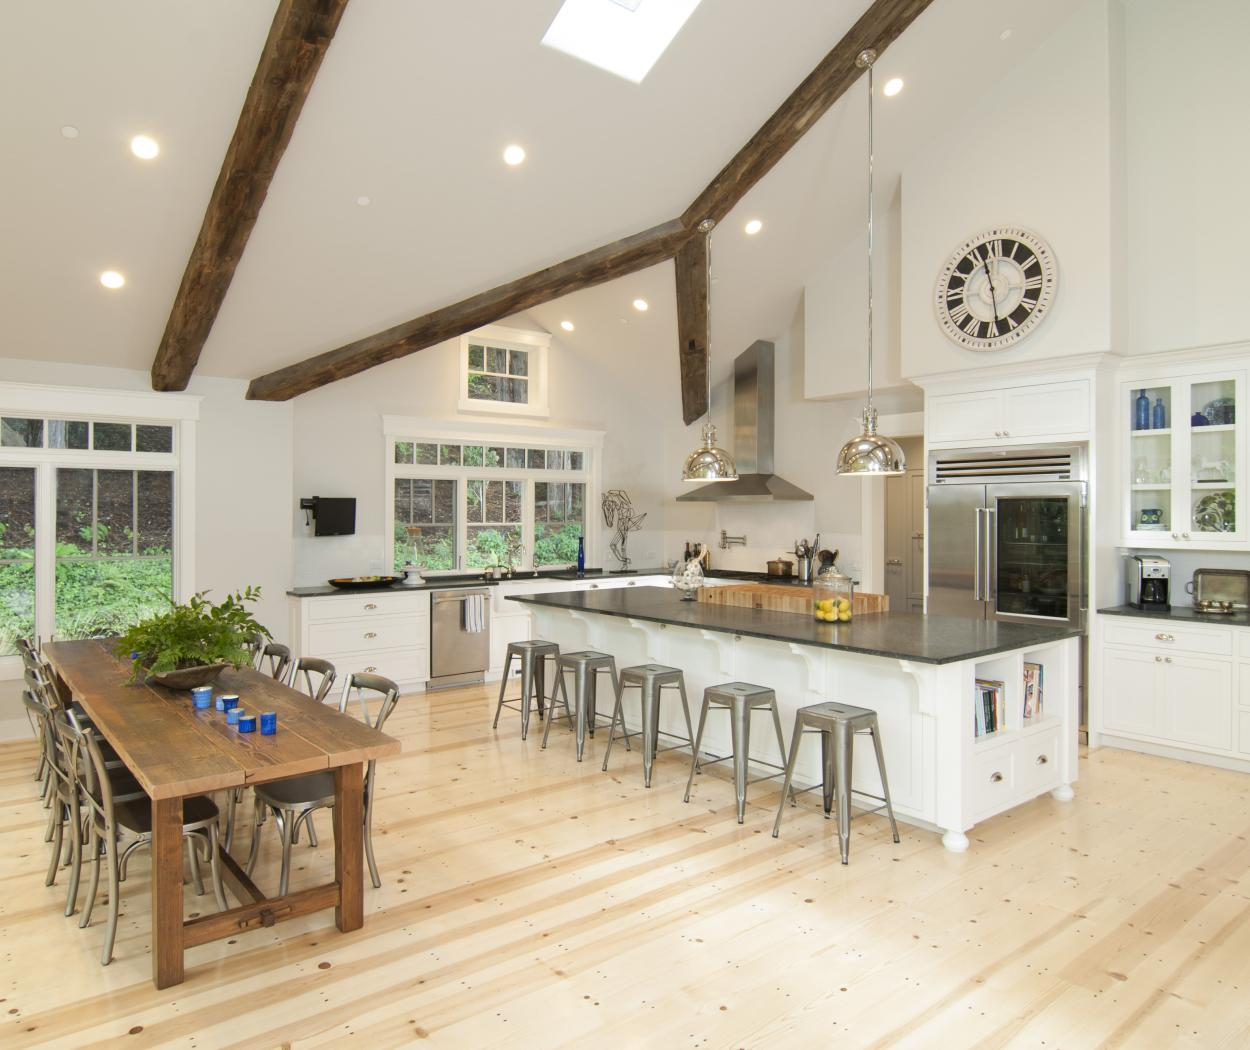 White Transitional Kitchen with a Long Island, Beautiful Wood Beams and a Stainless Steel Hood